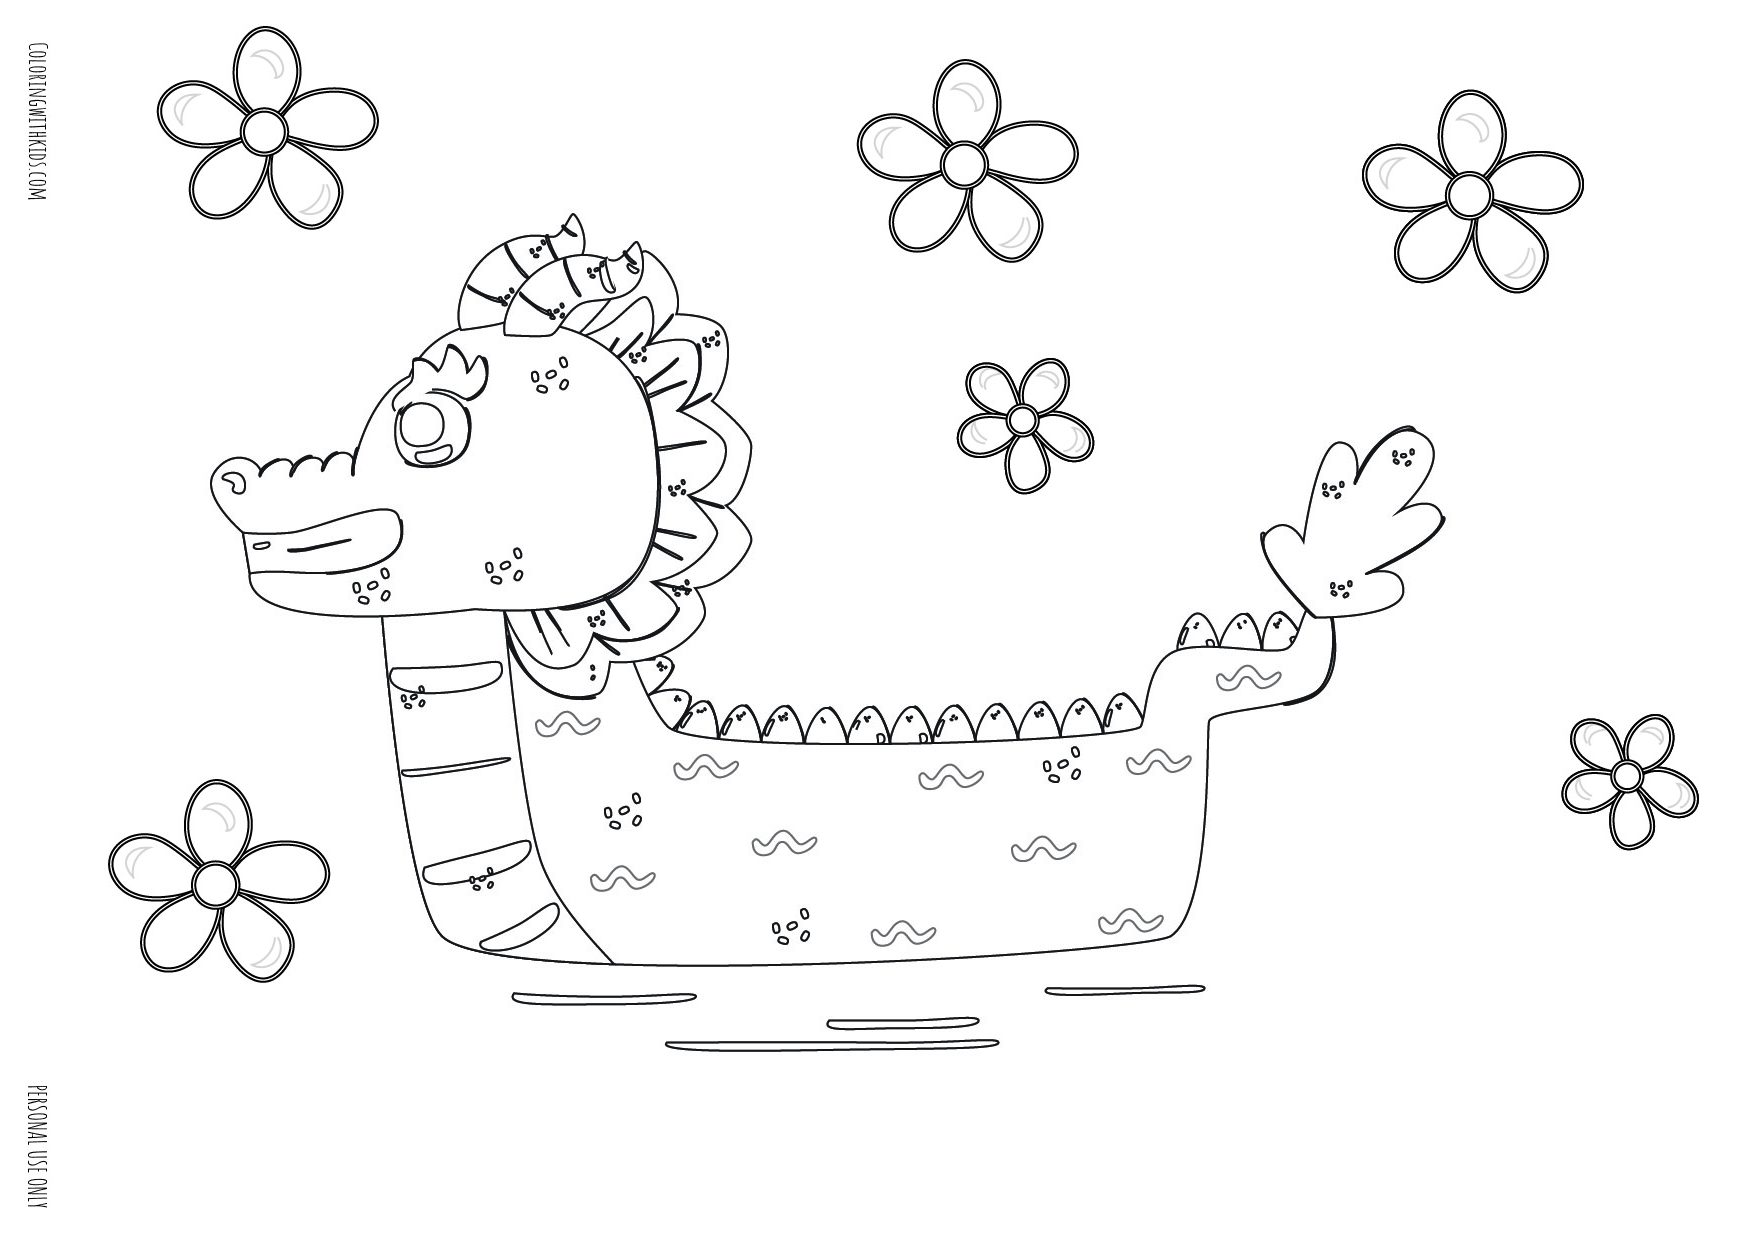 Easy Dragon Boat Coloring pages